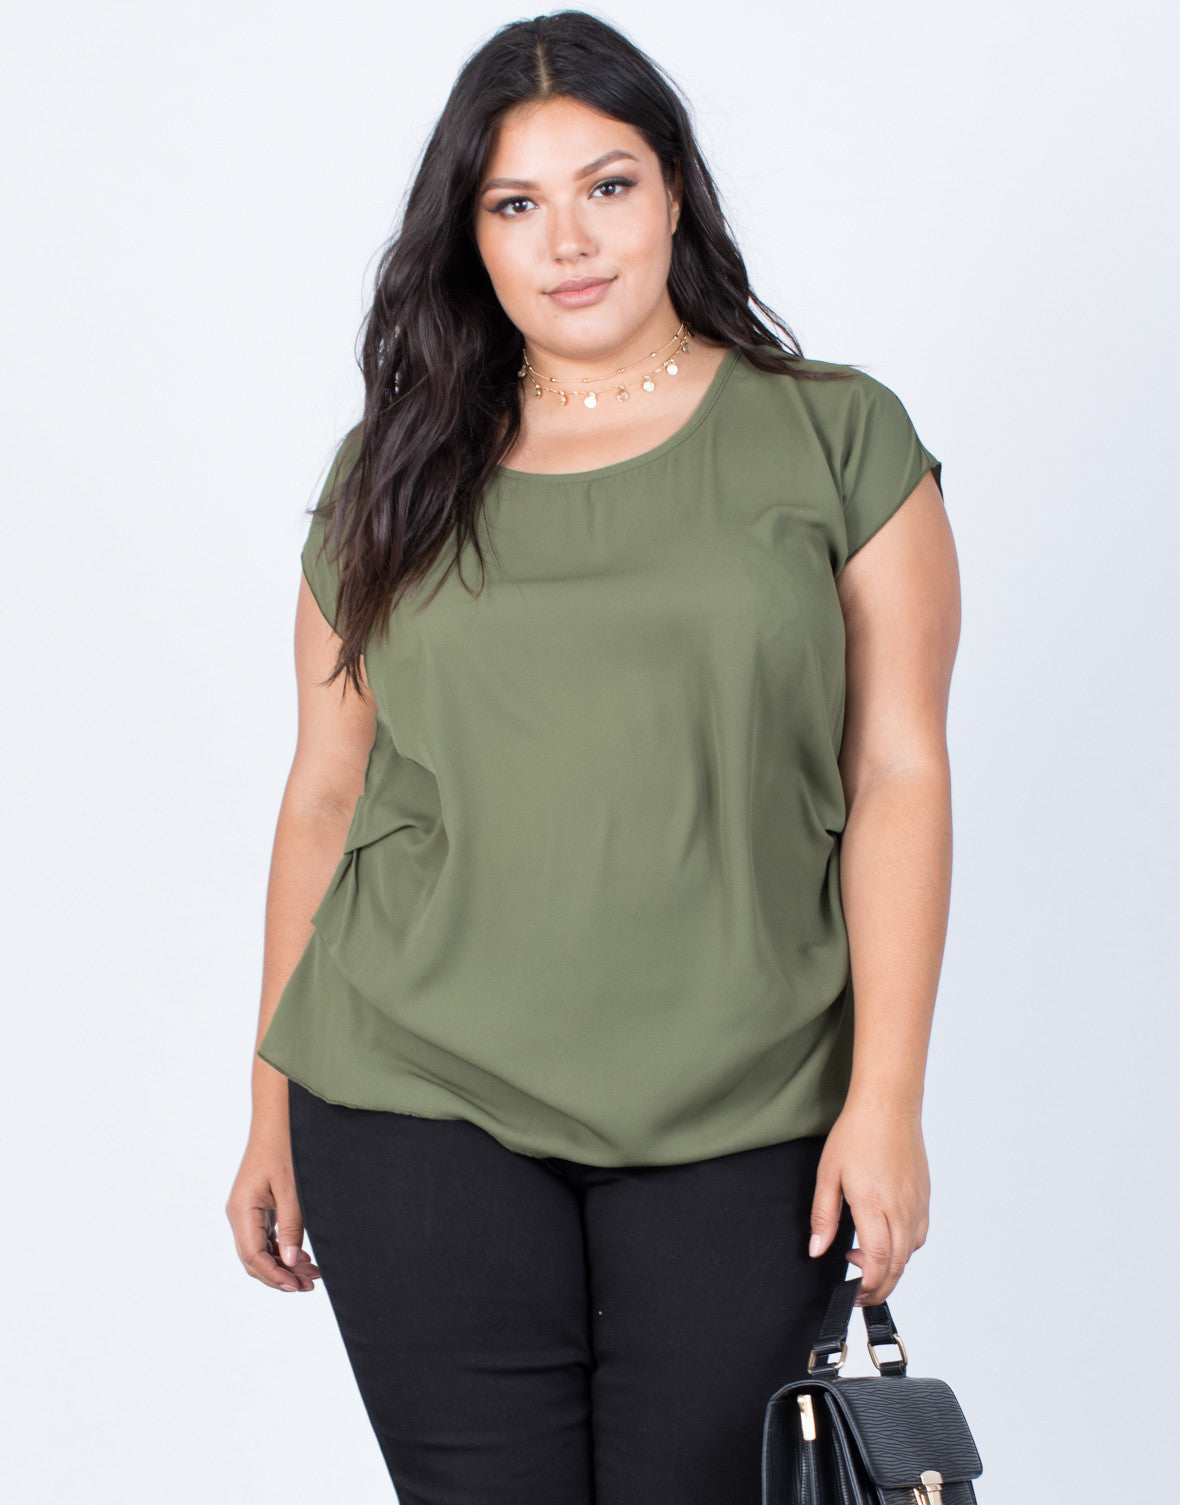 Olive Plus Size Effortless Chiffon Blouse - Front View